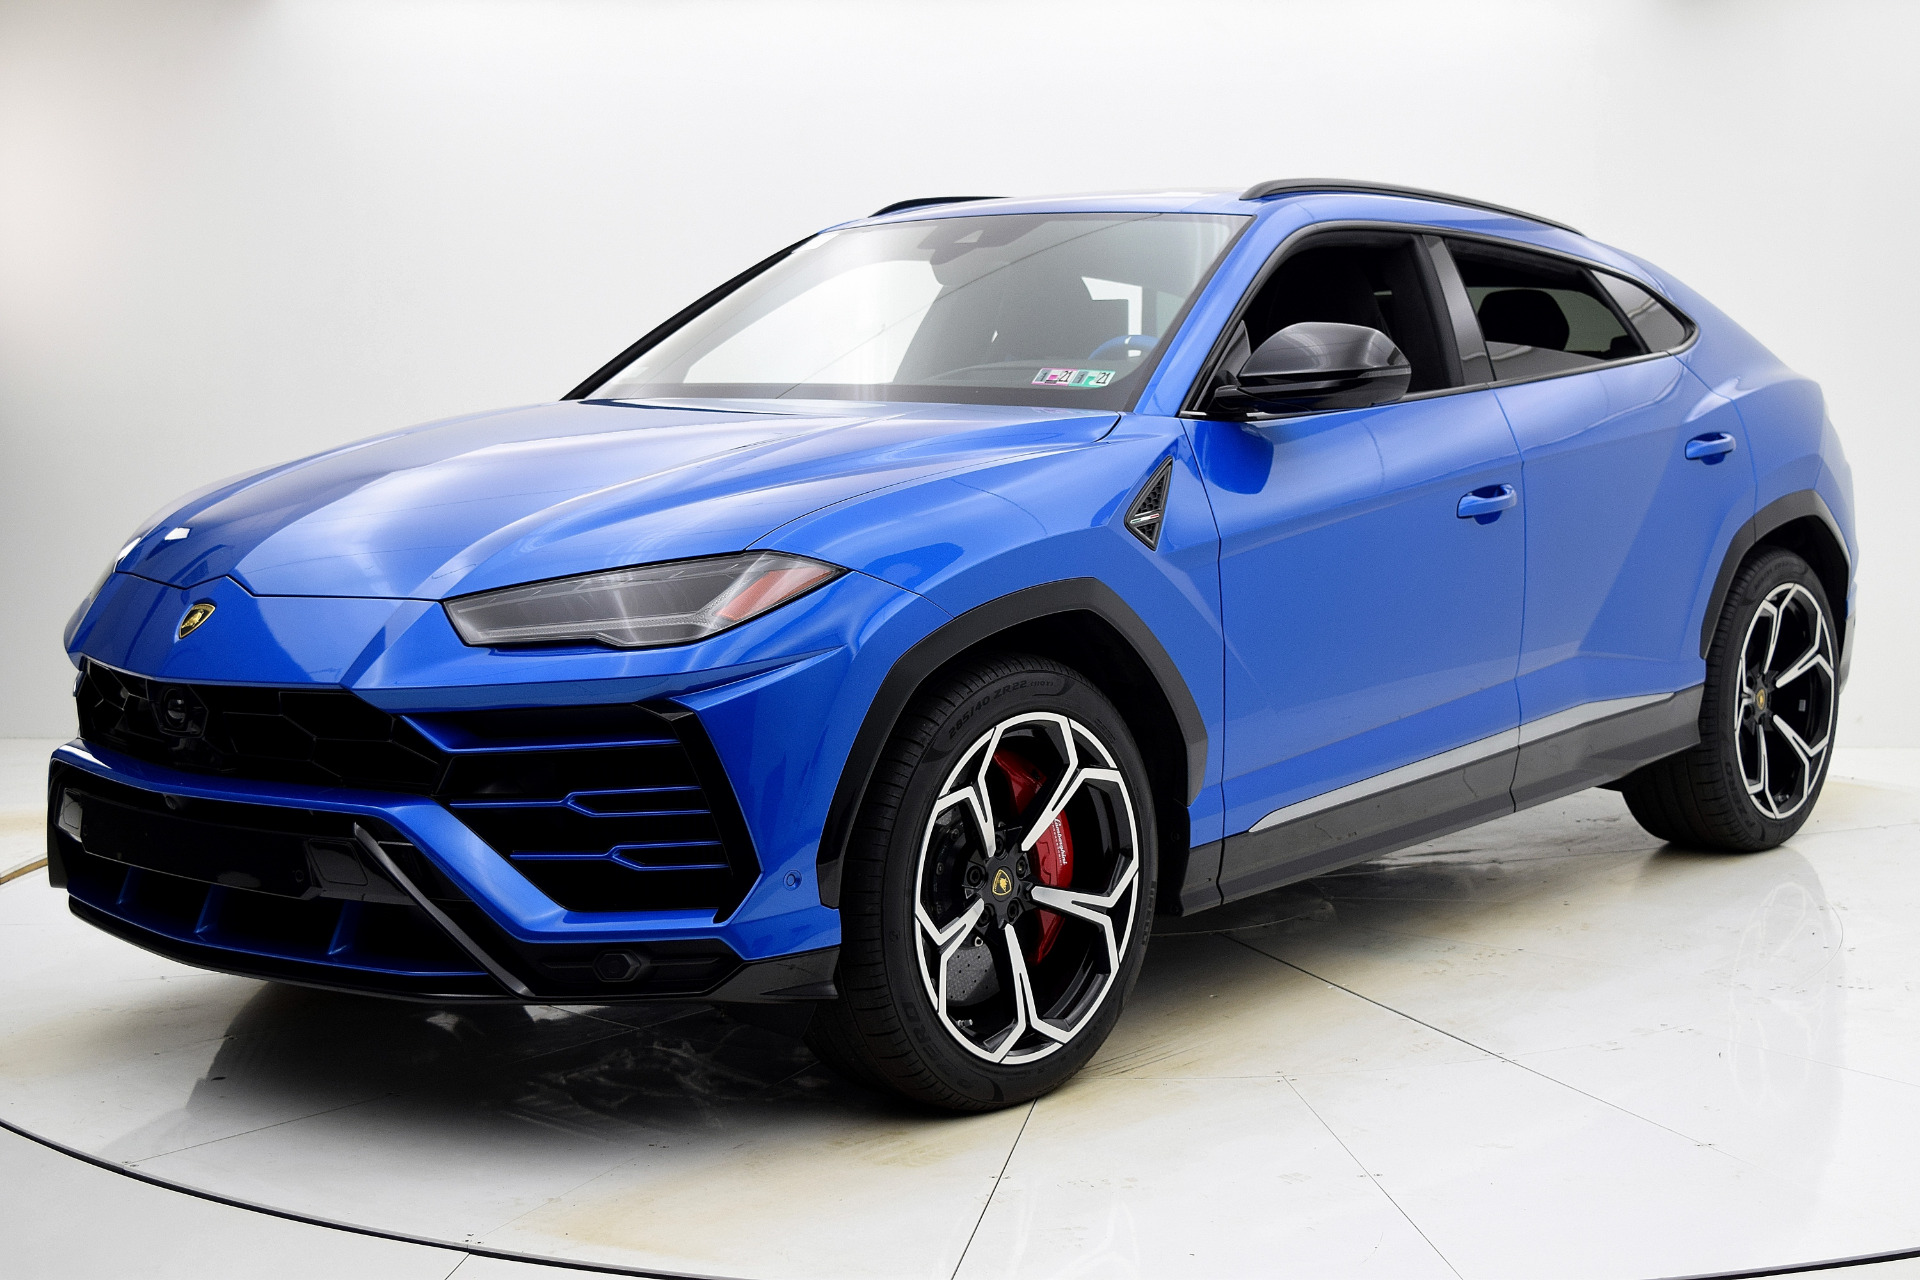 Used 2019 Lamborghini Urus for sale $224,880 at F.C. Kerbeck Aston Martin in Palmyra NJ 08065 2